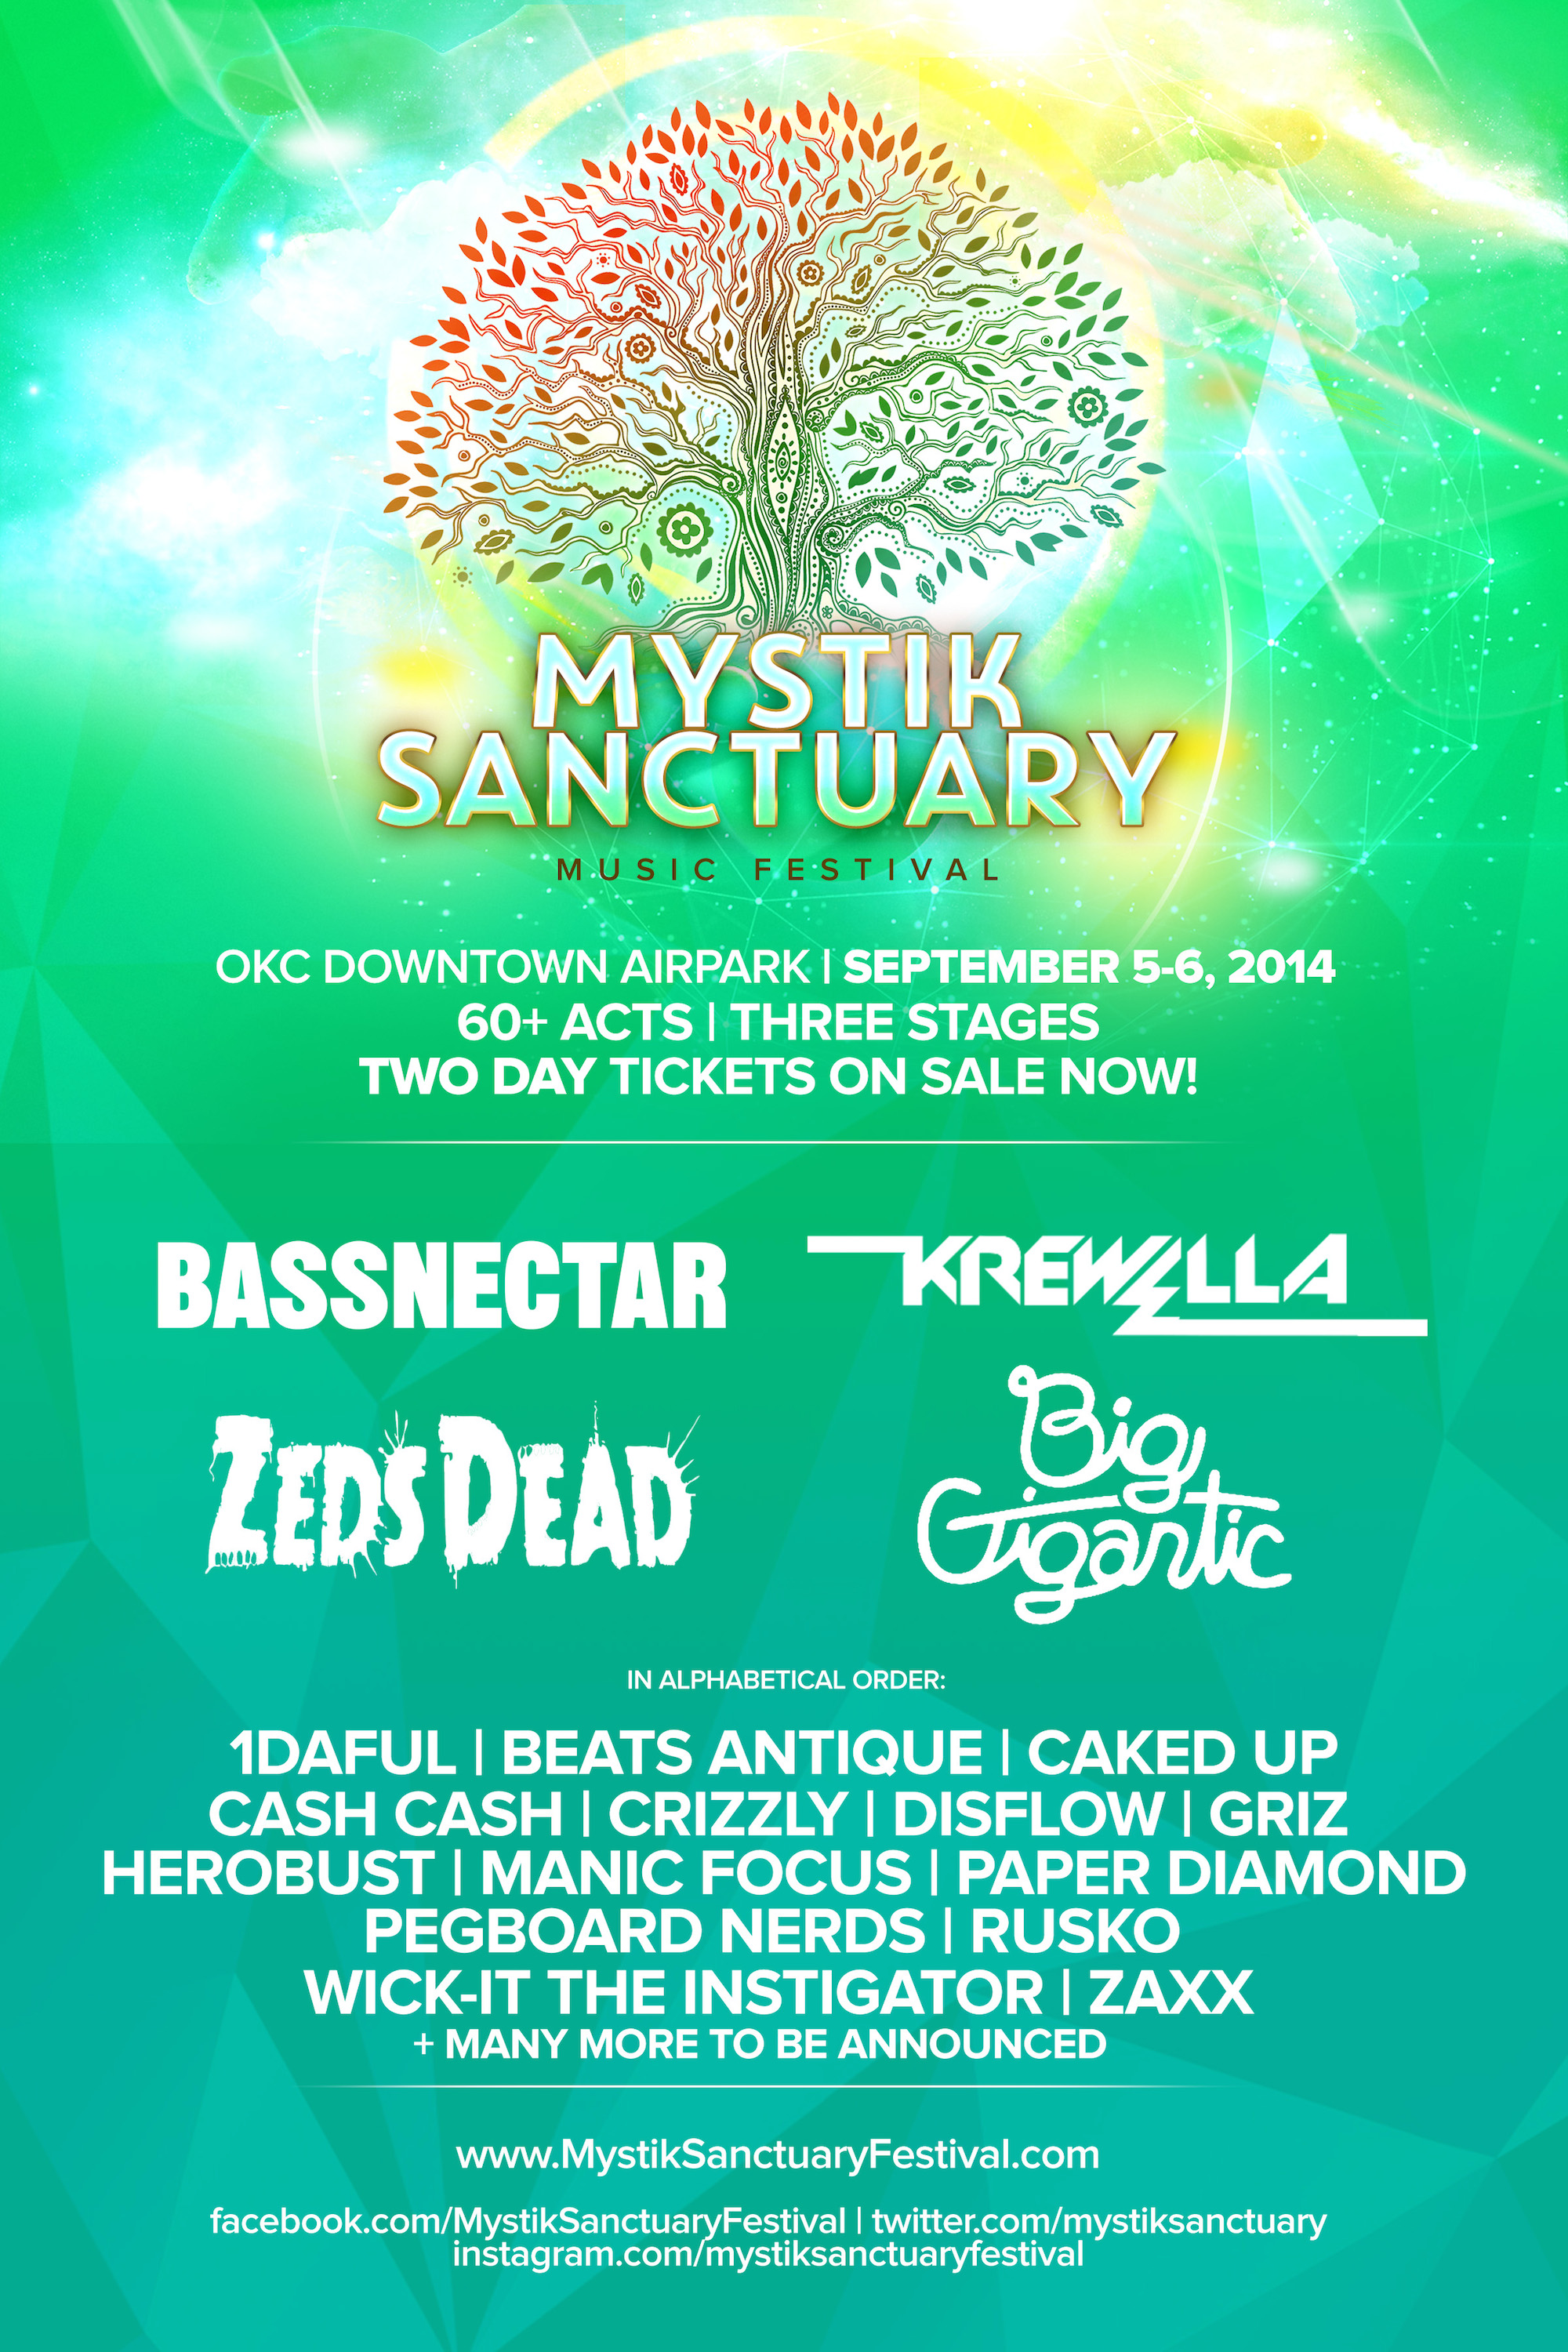 Bassnectar at Mystik Sanctuary Festival